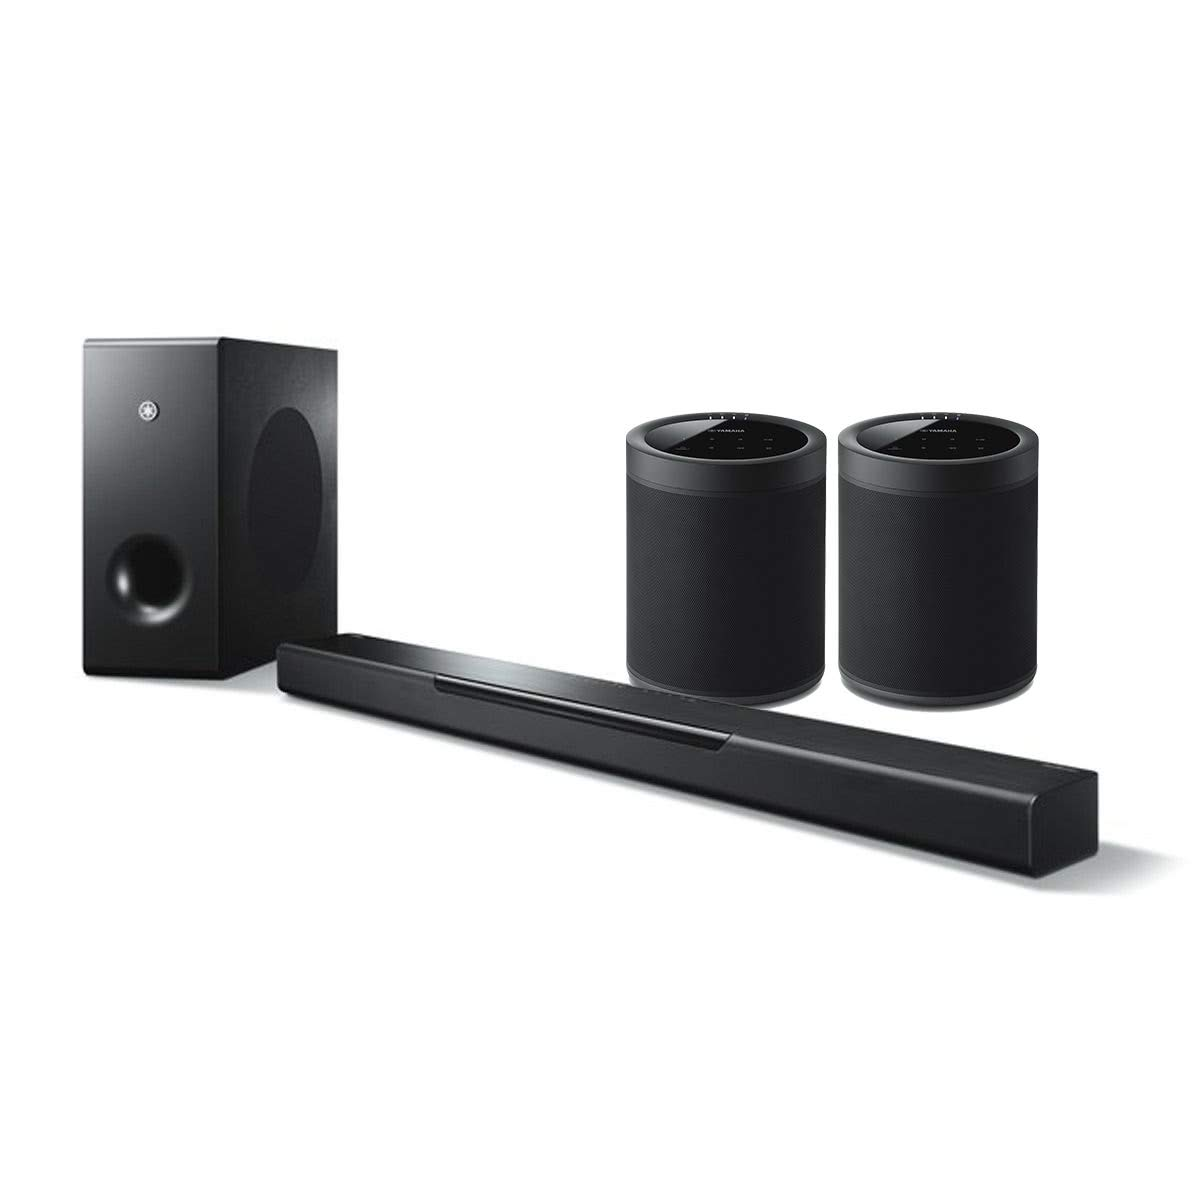 YAMAHA MusicCast BAR 400 Sound Bar with Wireless Subwoofer and WX-021BL MusicCast 20 Wireless Speakers - Pair (Black)